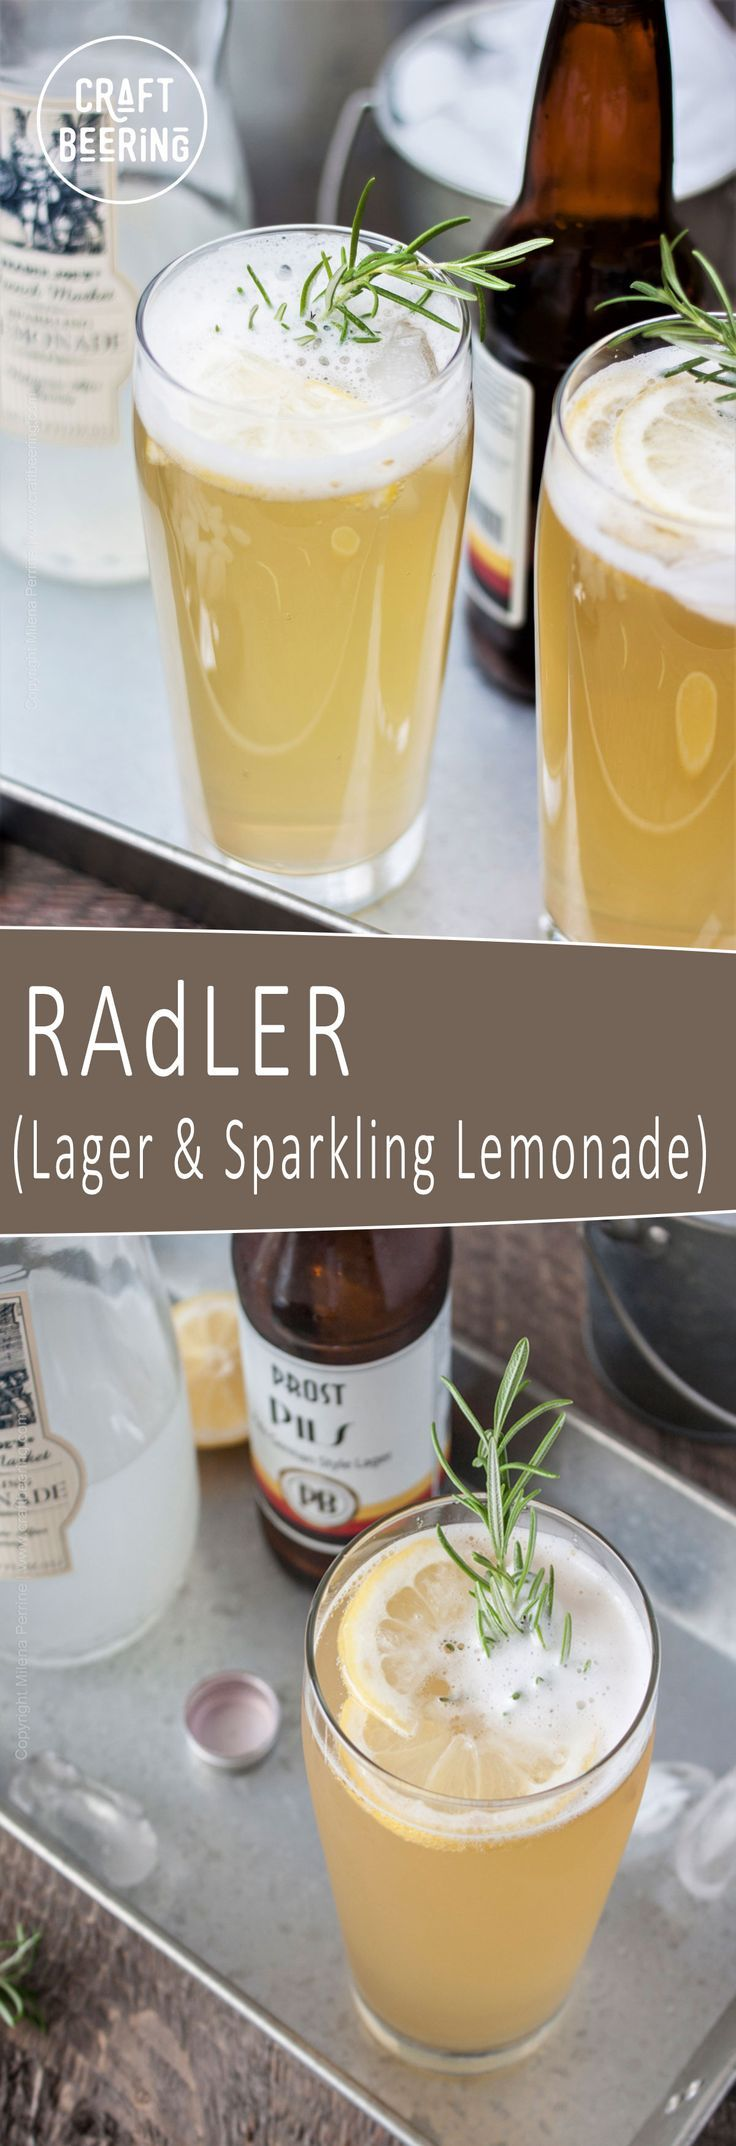 Radler beer cocktails are so refreshing! German Pilsner with Sparkling Lemonade and a rosemary garnish. Summer's official thirst quencher!